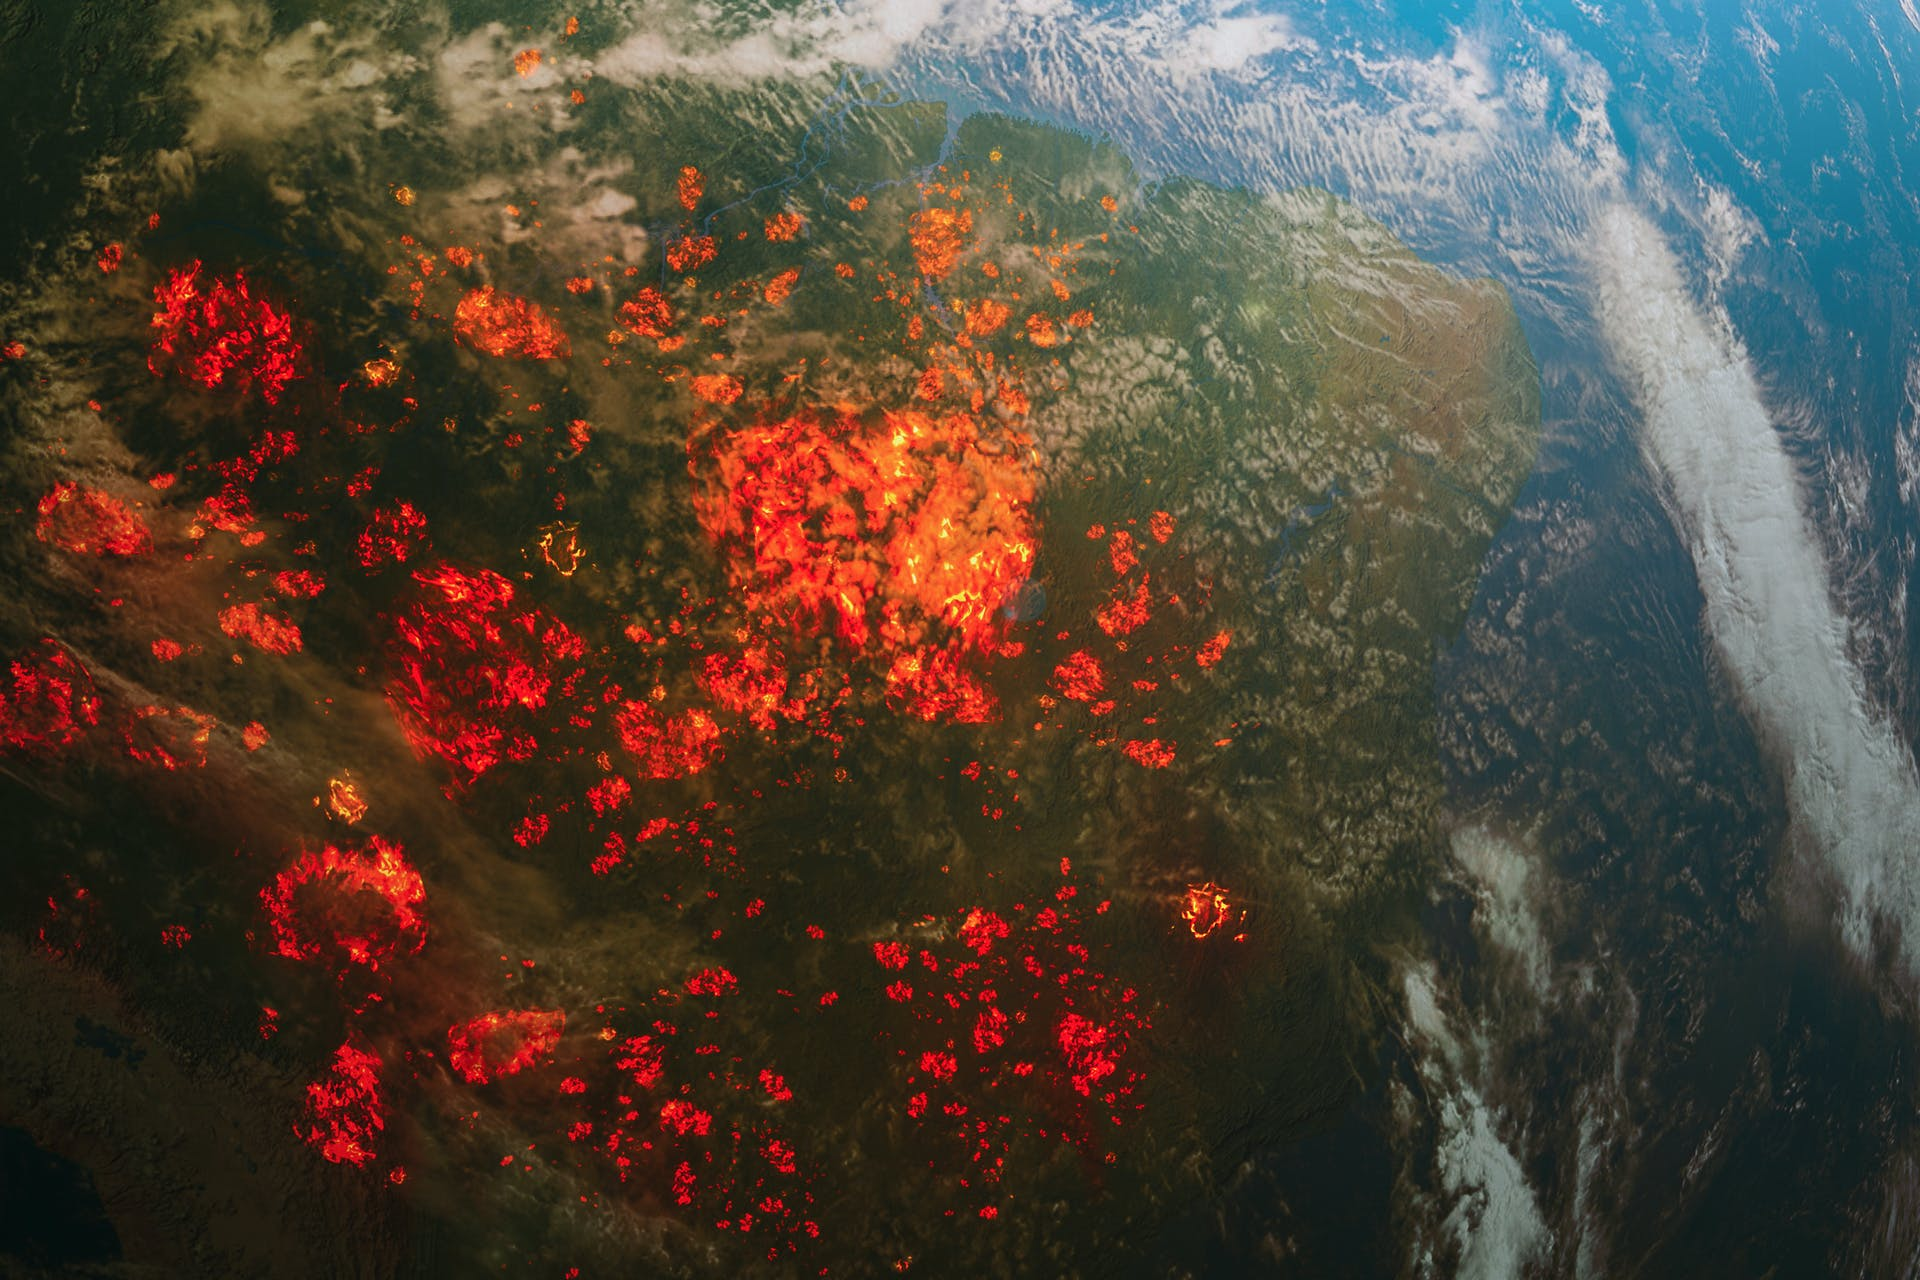 An image of the world on fire